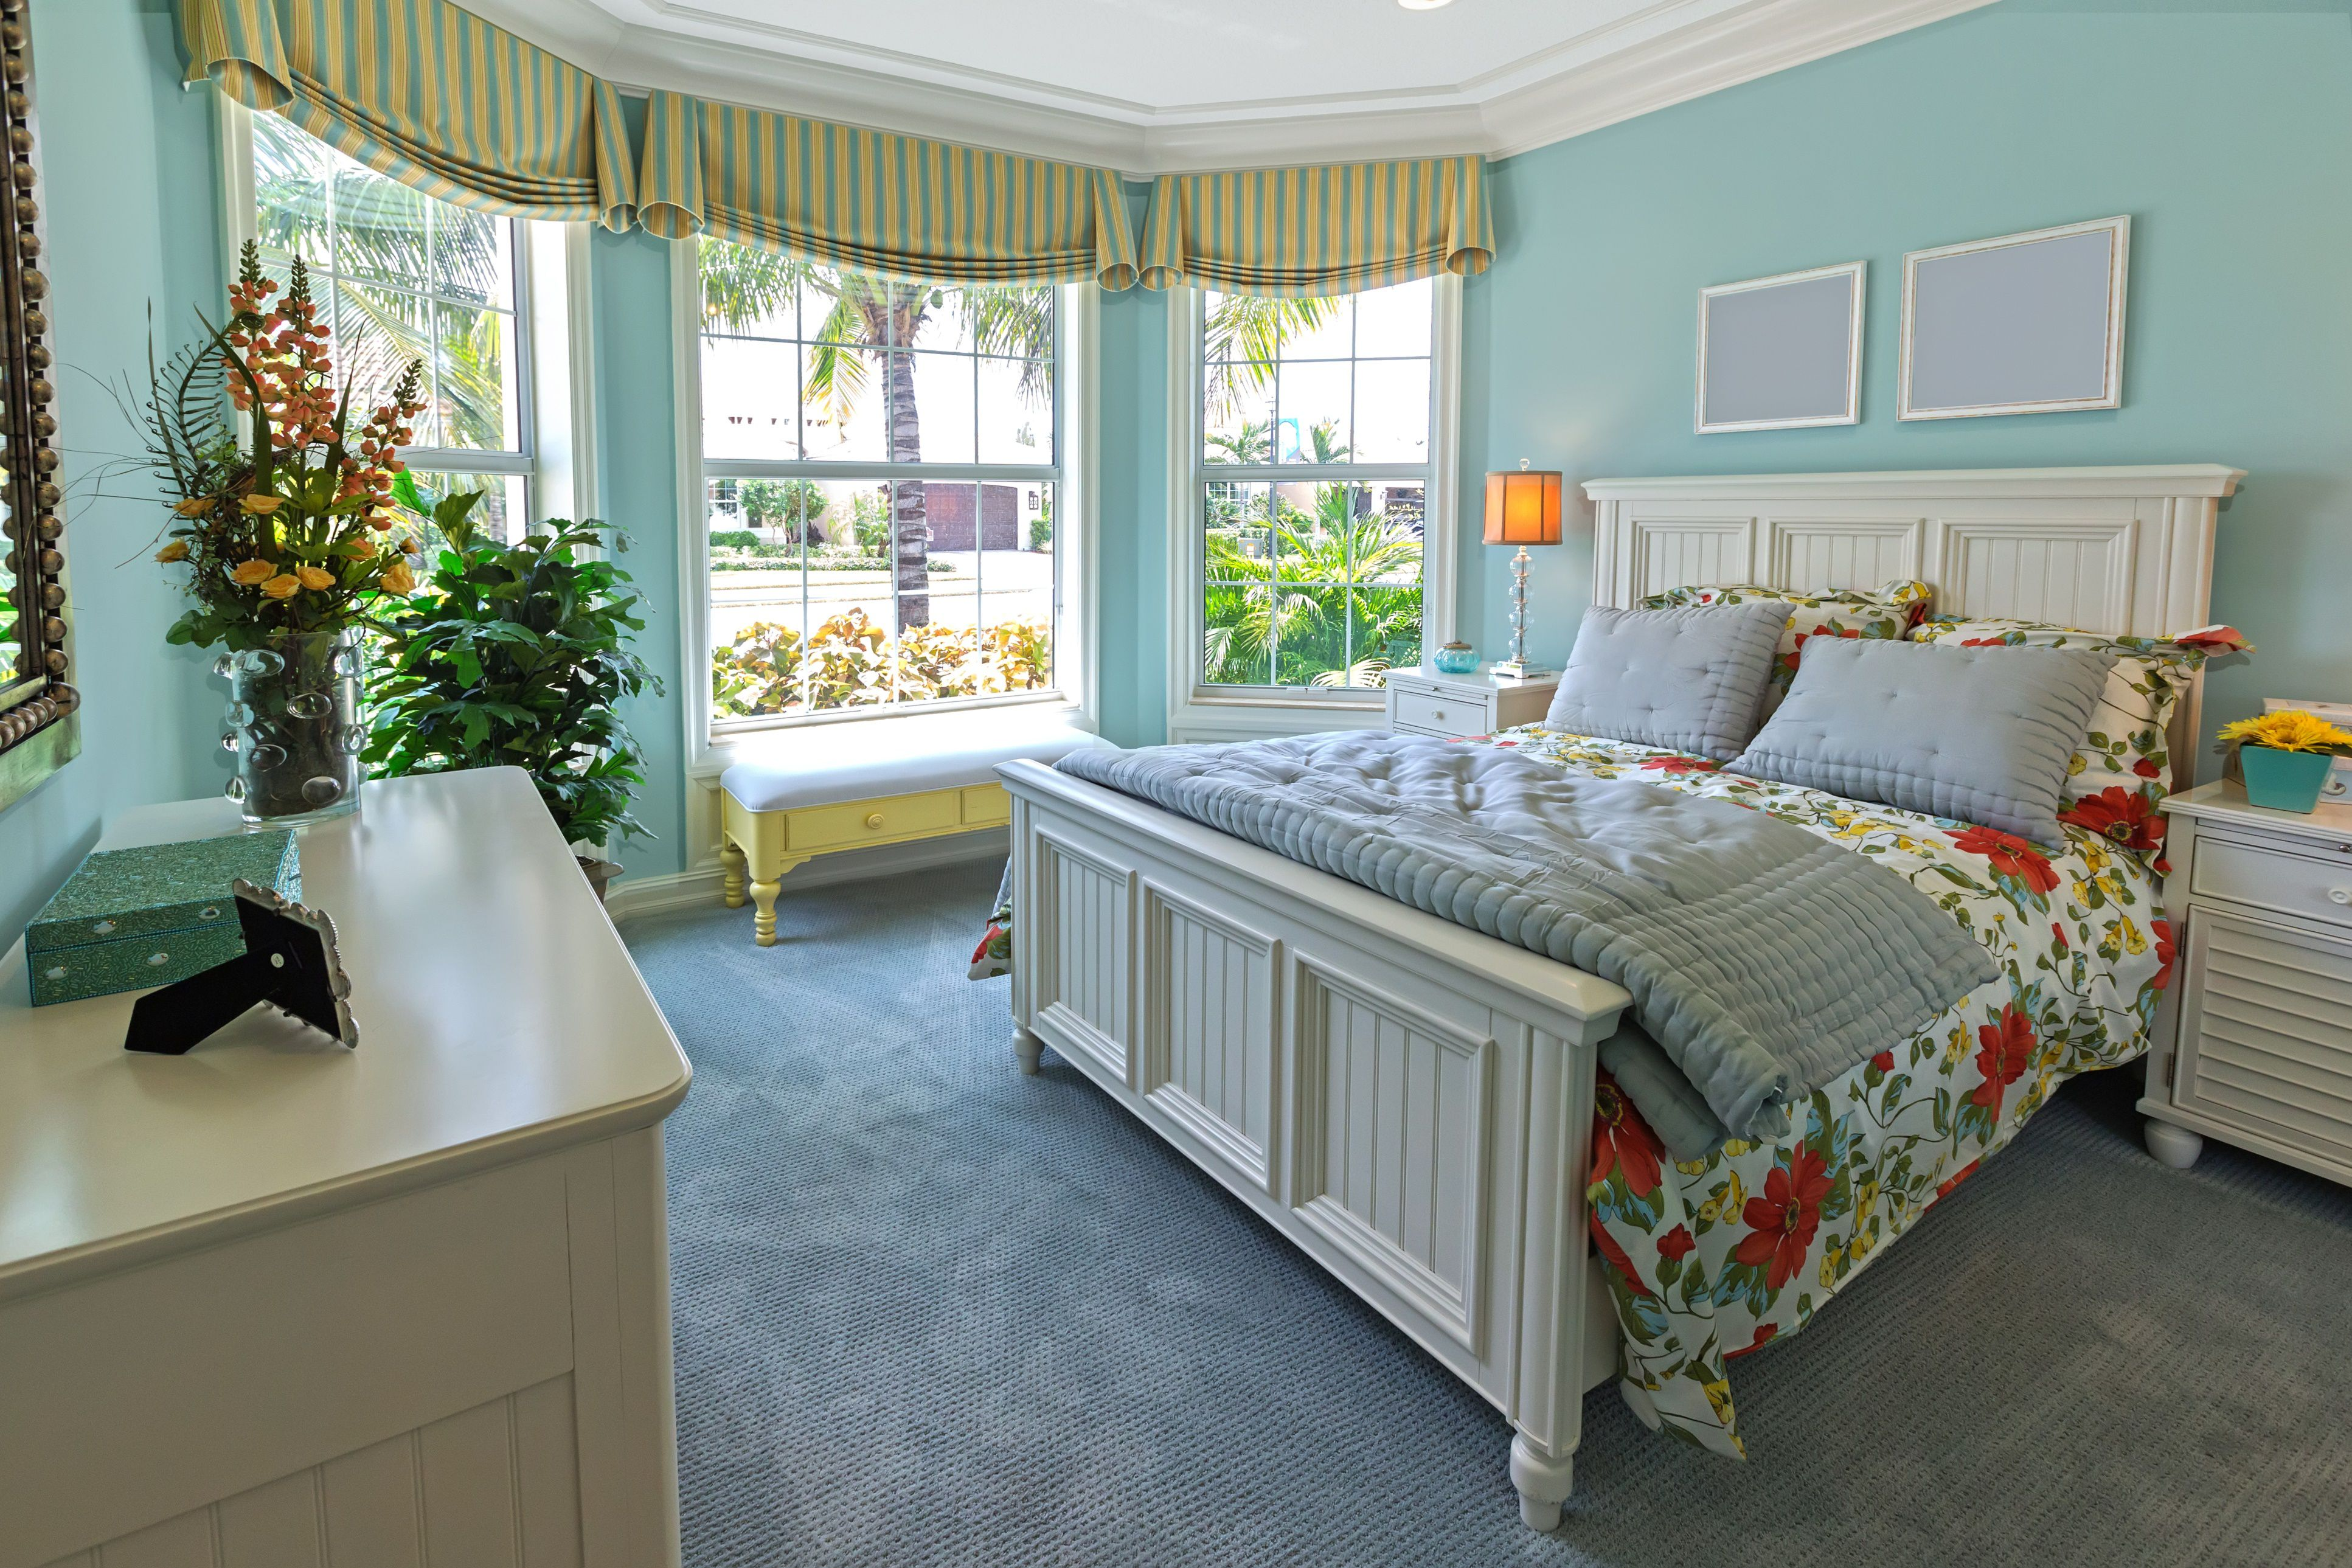 What Makes a Great Bedroom